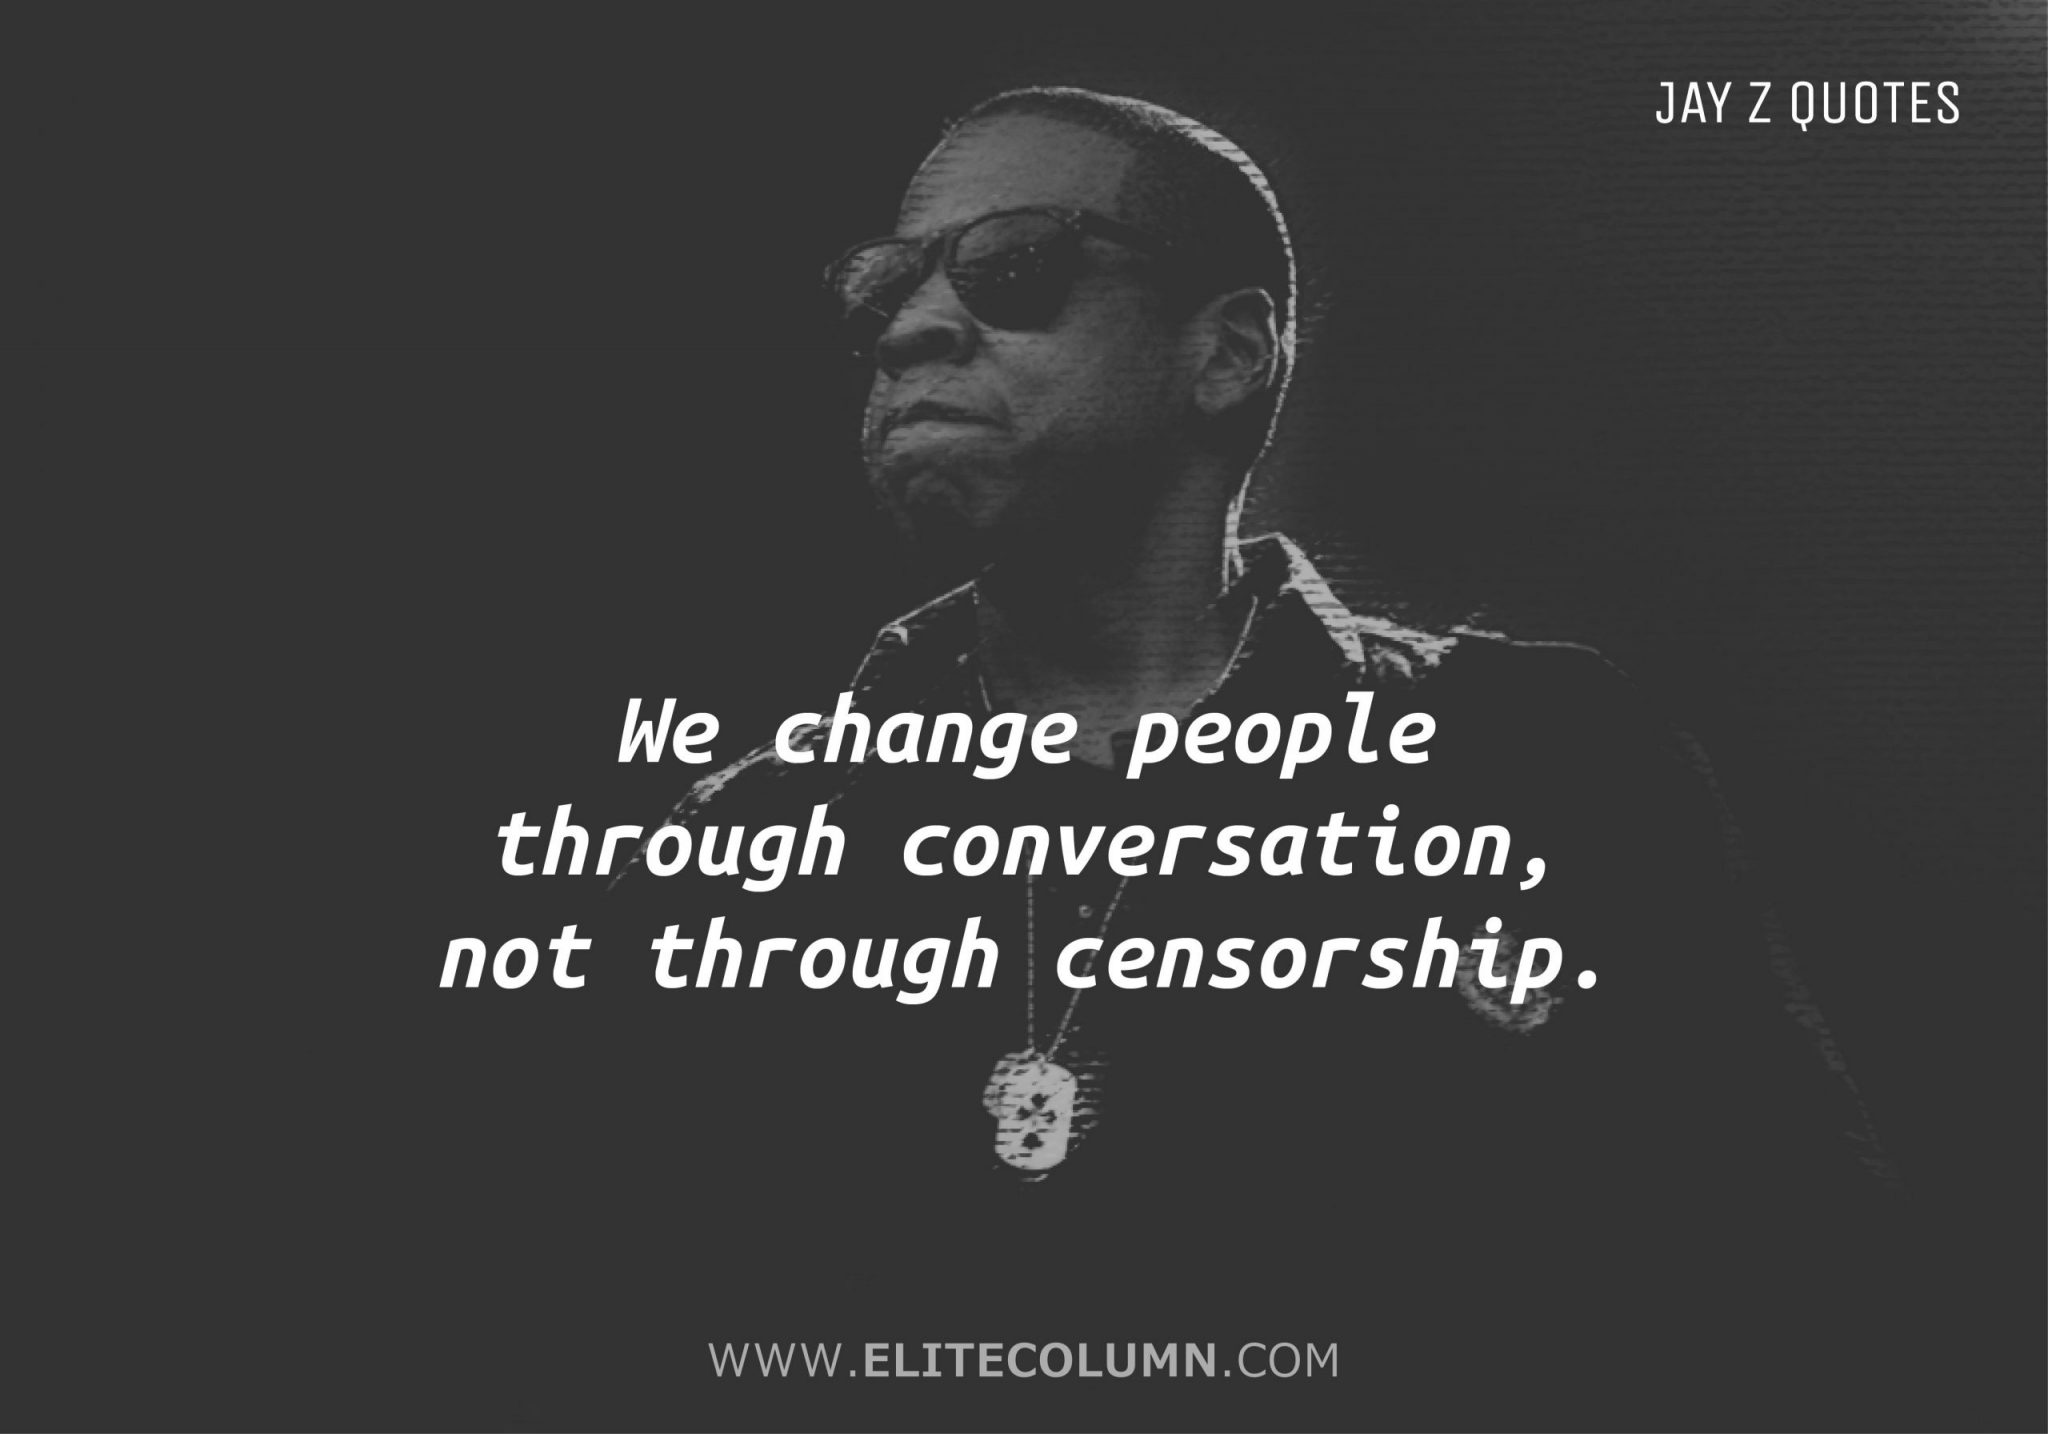 Jay Z Quotes (3)